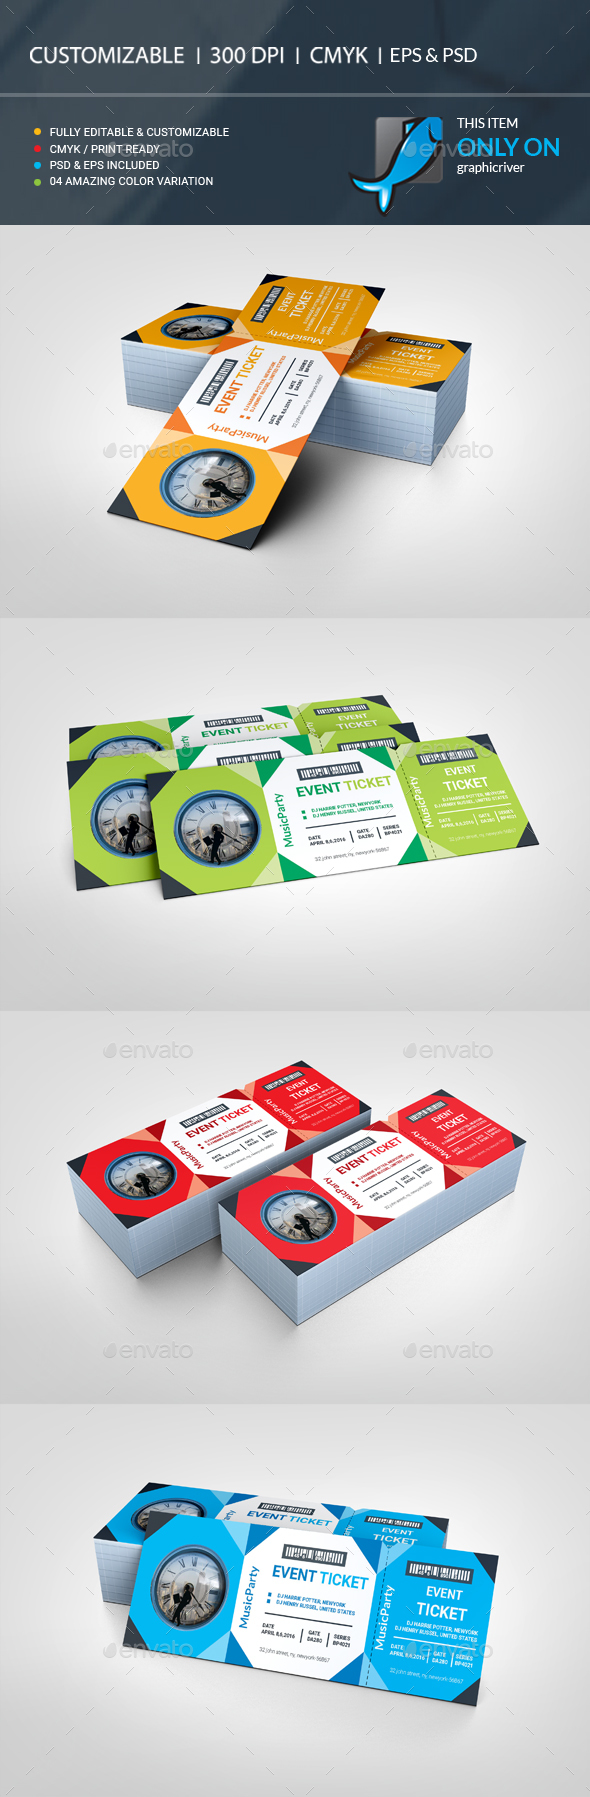 Event Ticket — PSD Template #carnival #event tickets #concert ...